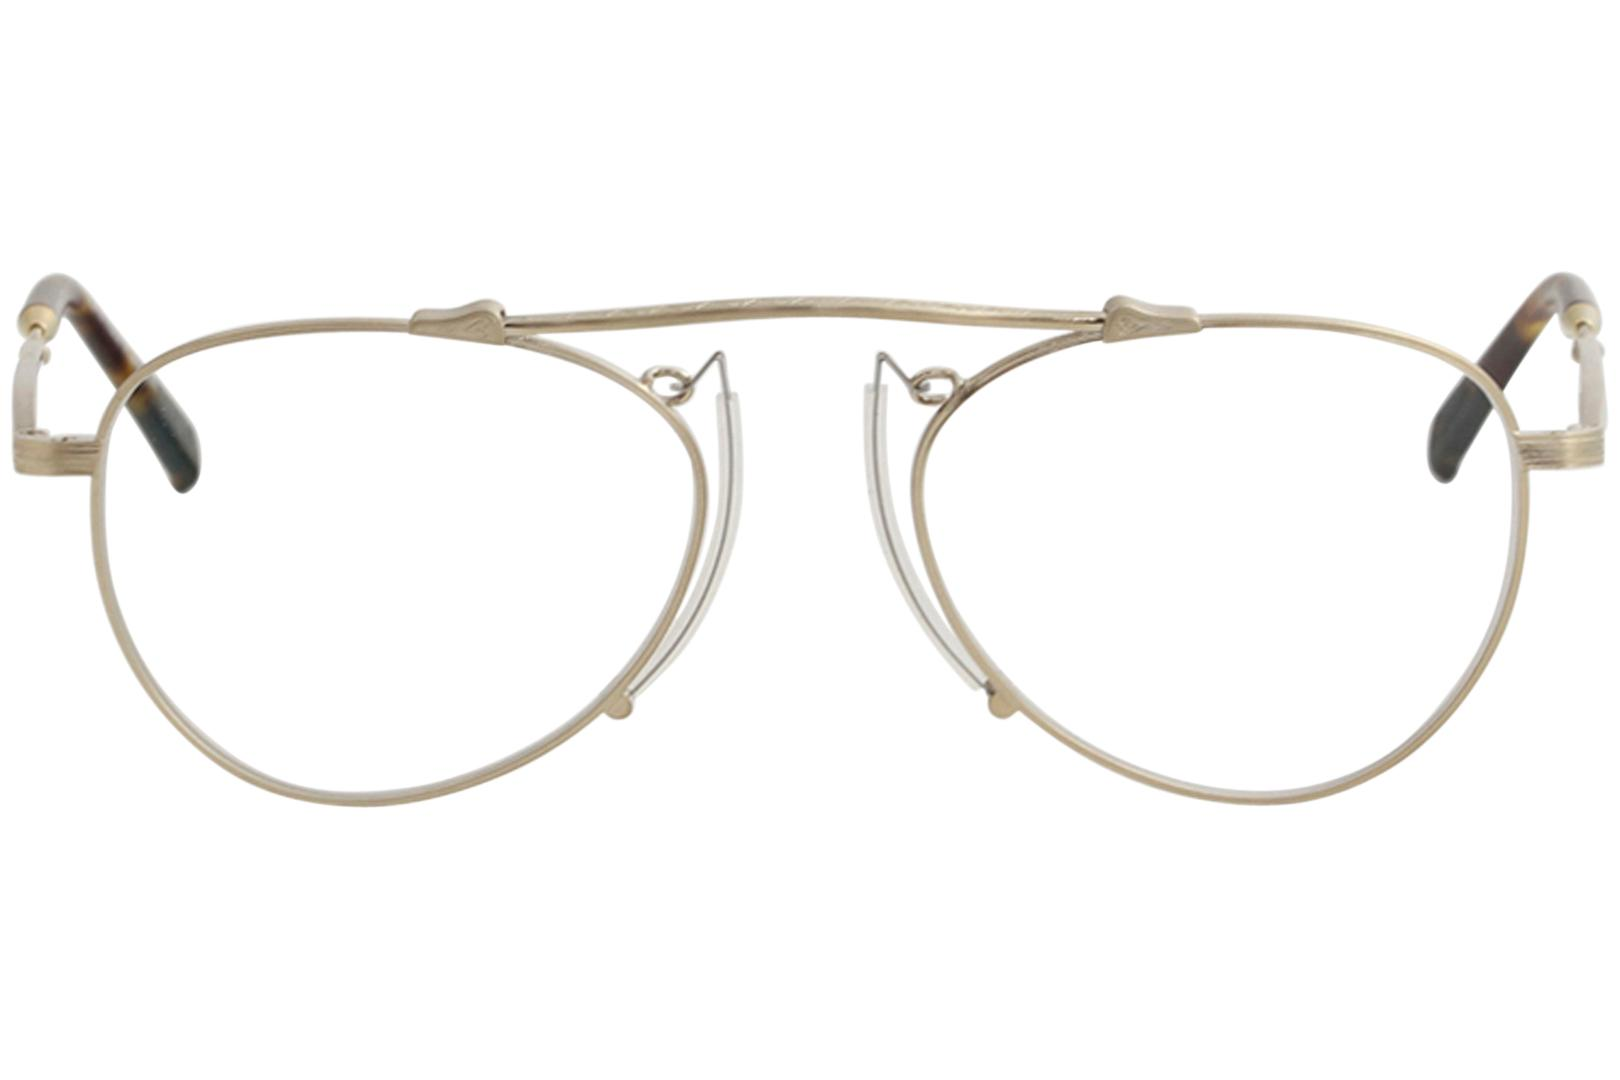 a06cb7537d Matsuda Men s Eyeglasses M3036 M 3036 Full Rim Optical Frame